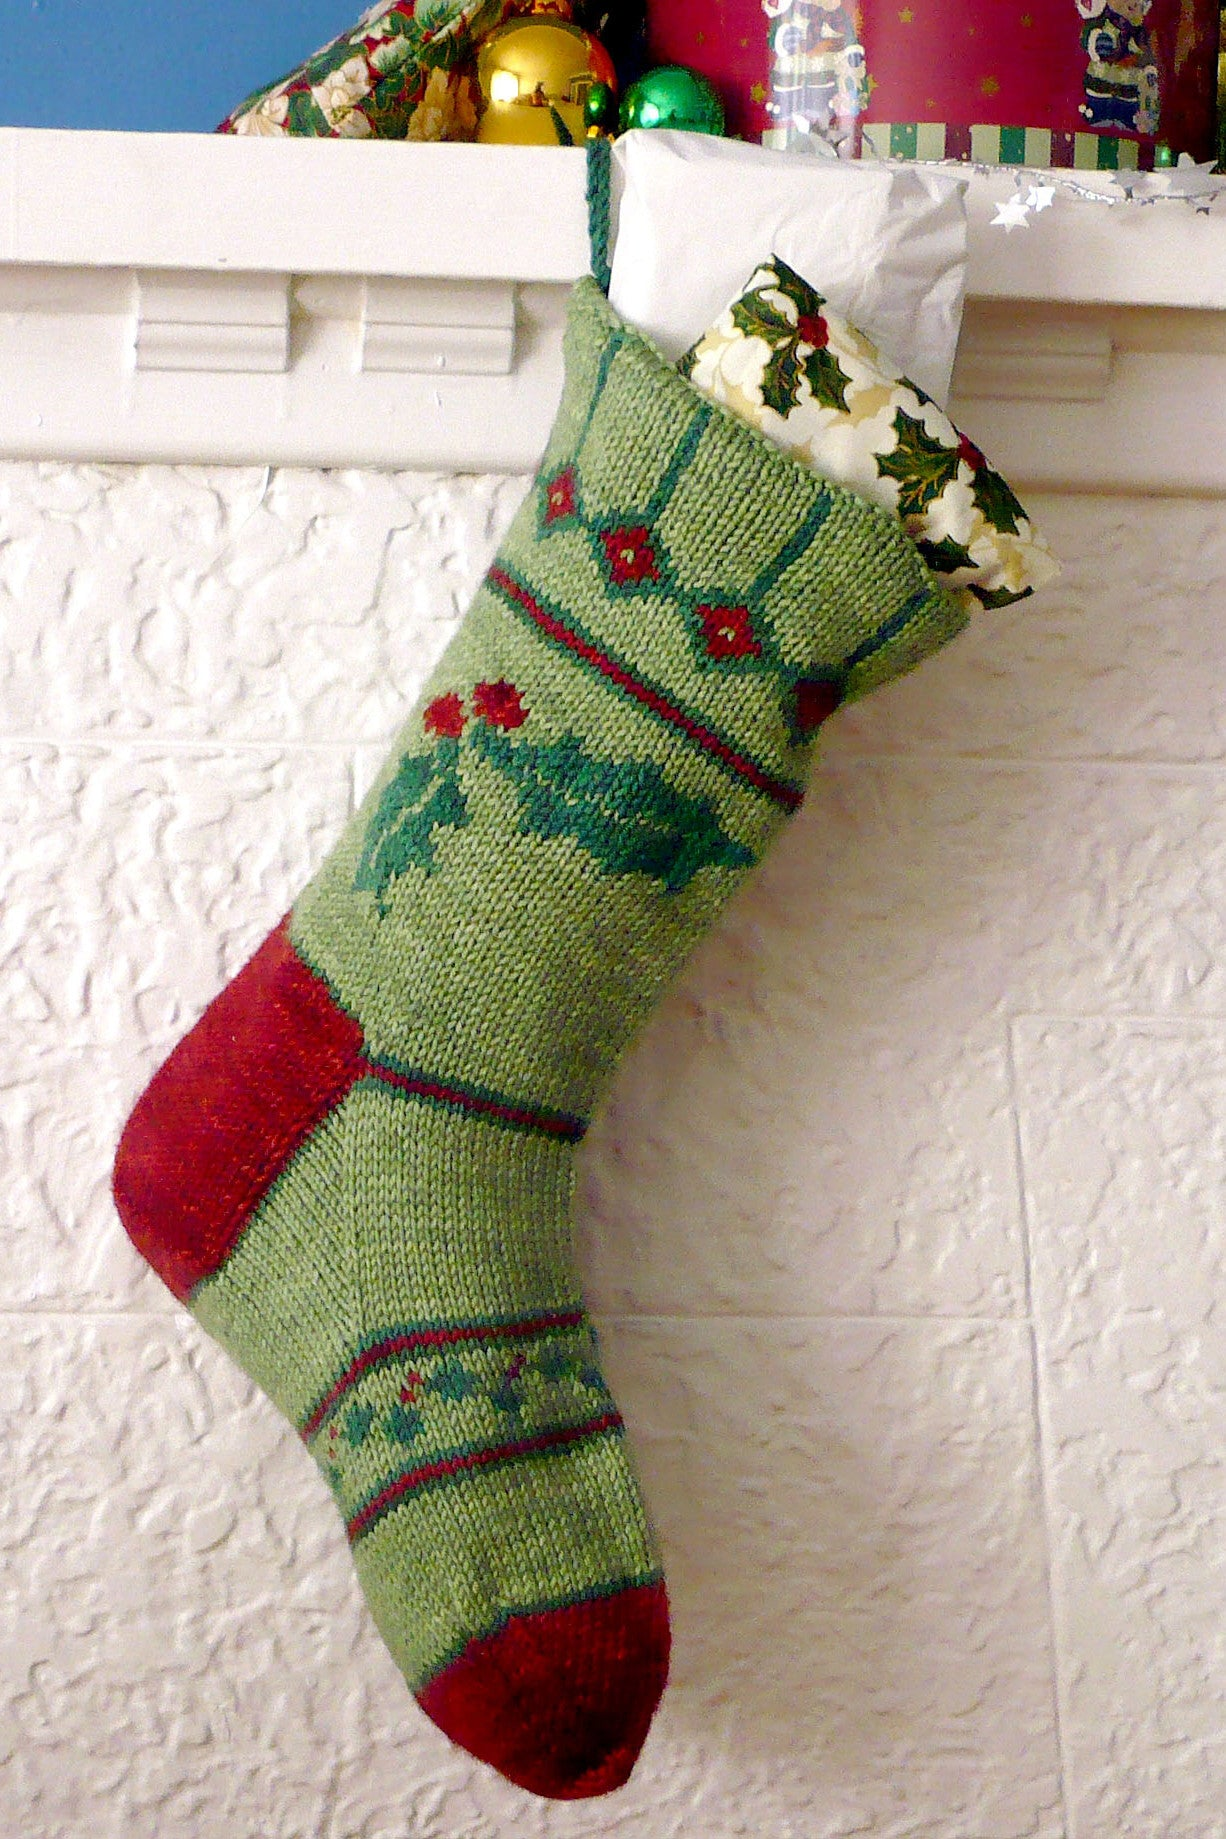 Holly Christmas Stocking knitting pattern - Sweet Paprika Designs